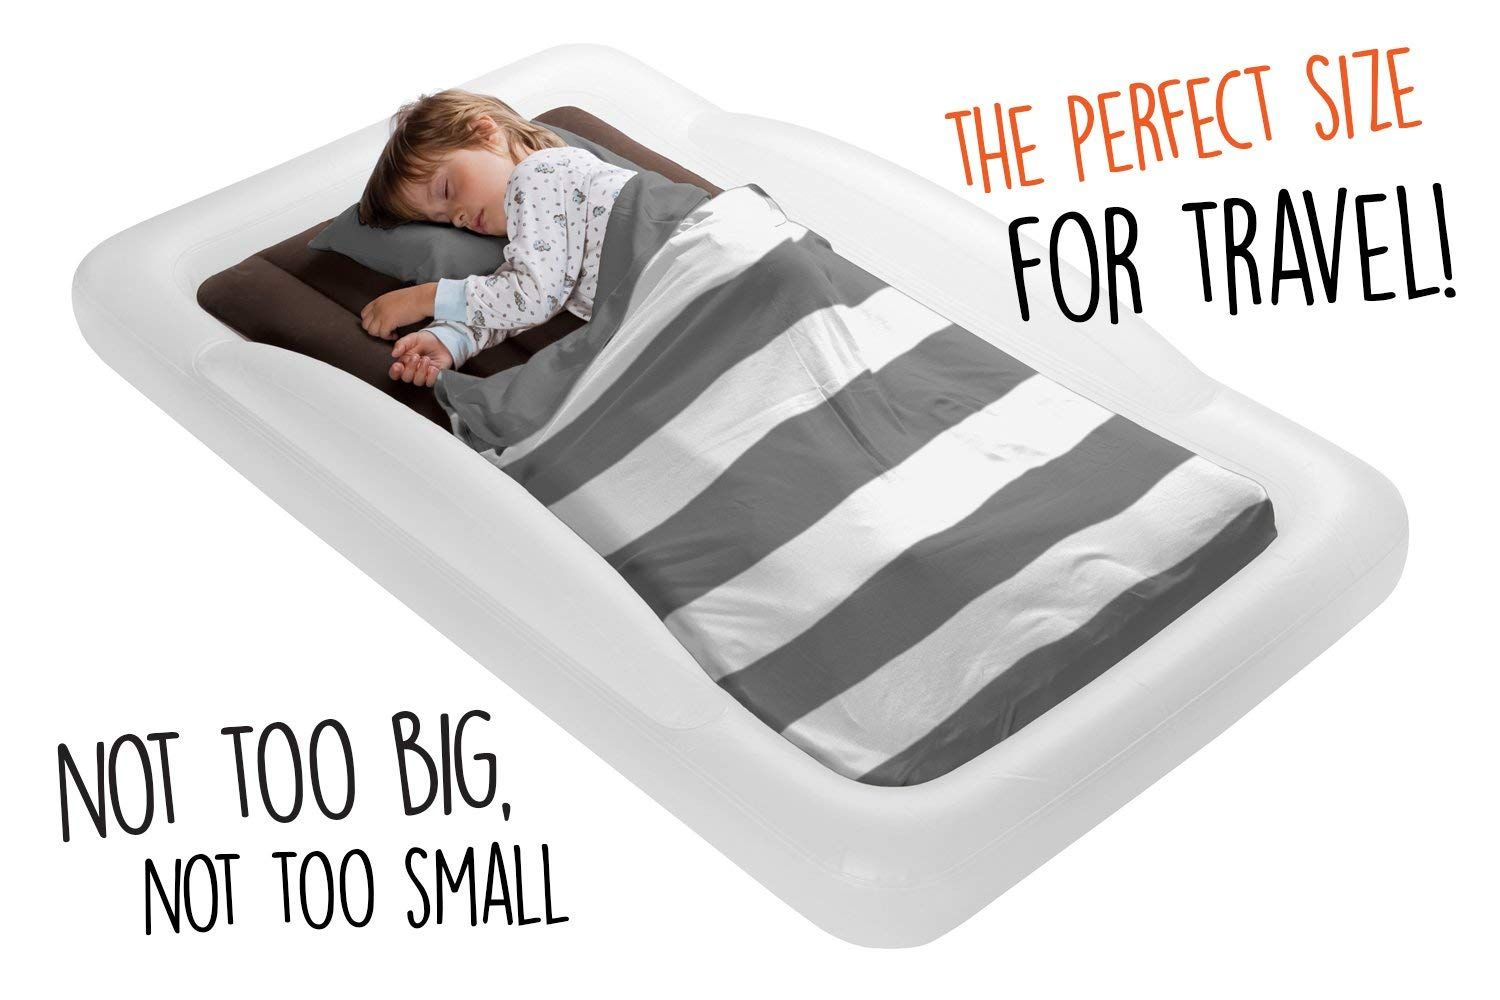 The Shrunks Toddler Travel Bed Toddler Travel Bed Toddler